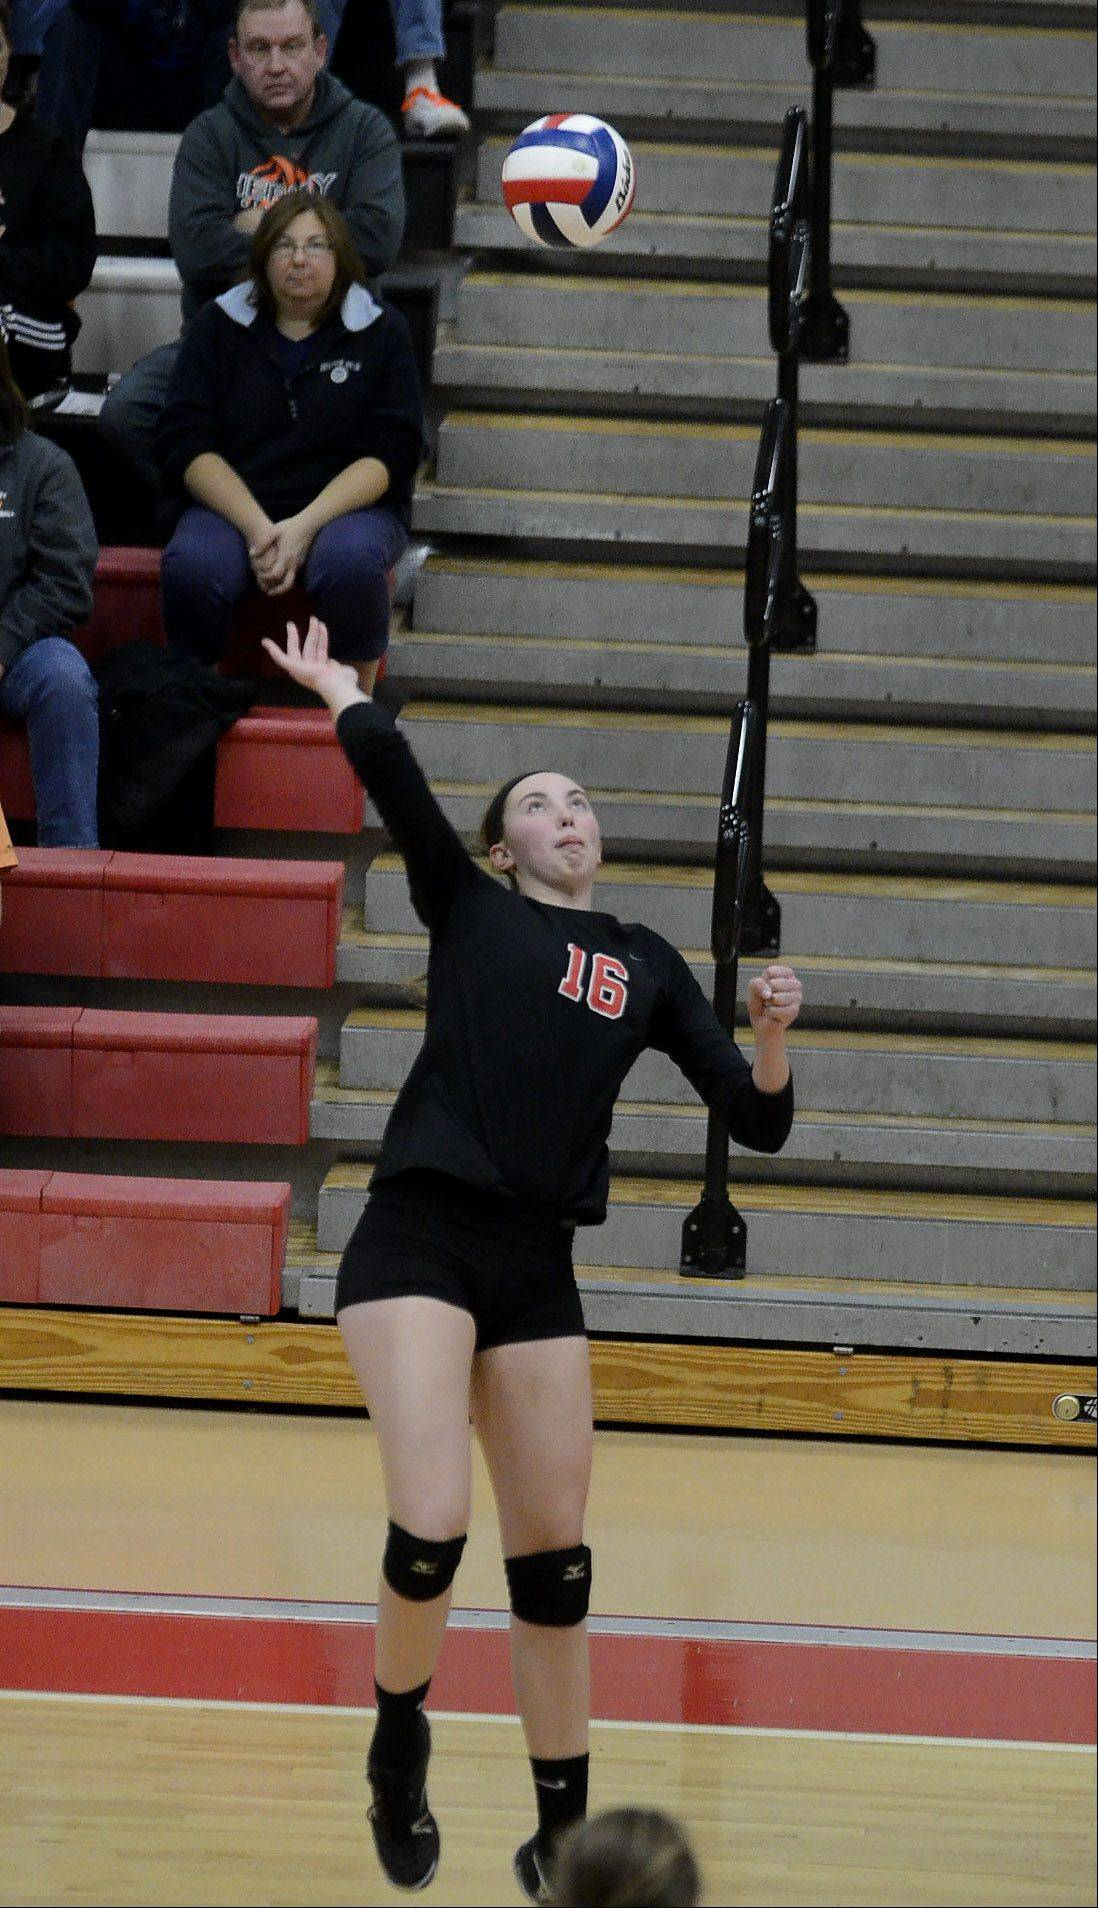 Barrington's Megan Talbot goes up high for a spike against Hersey in the Mid-Suburban League girls volleyball championship matchup.